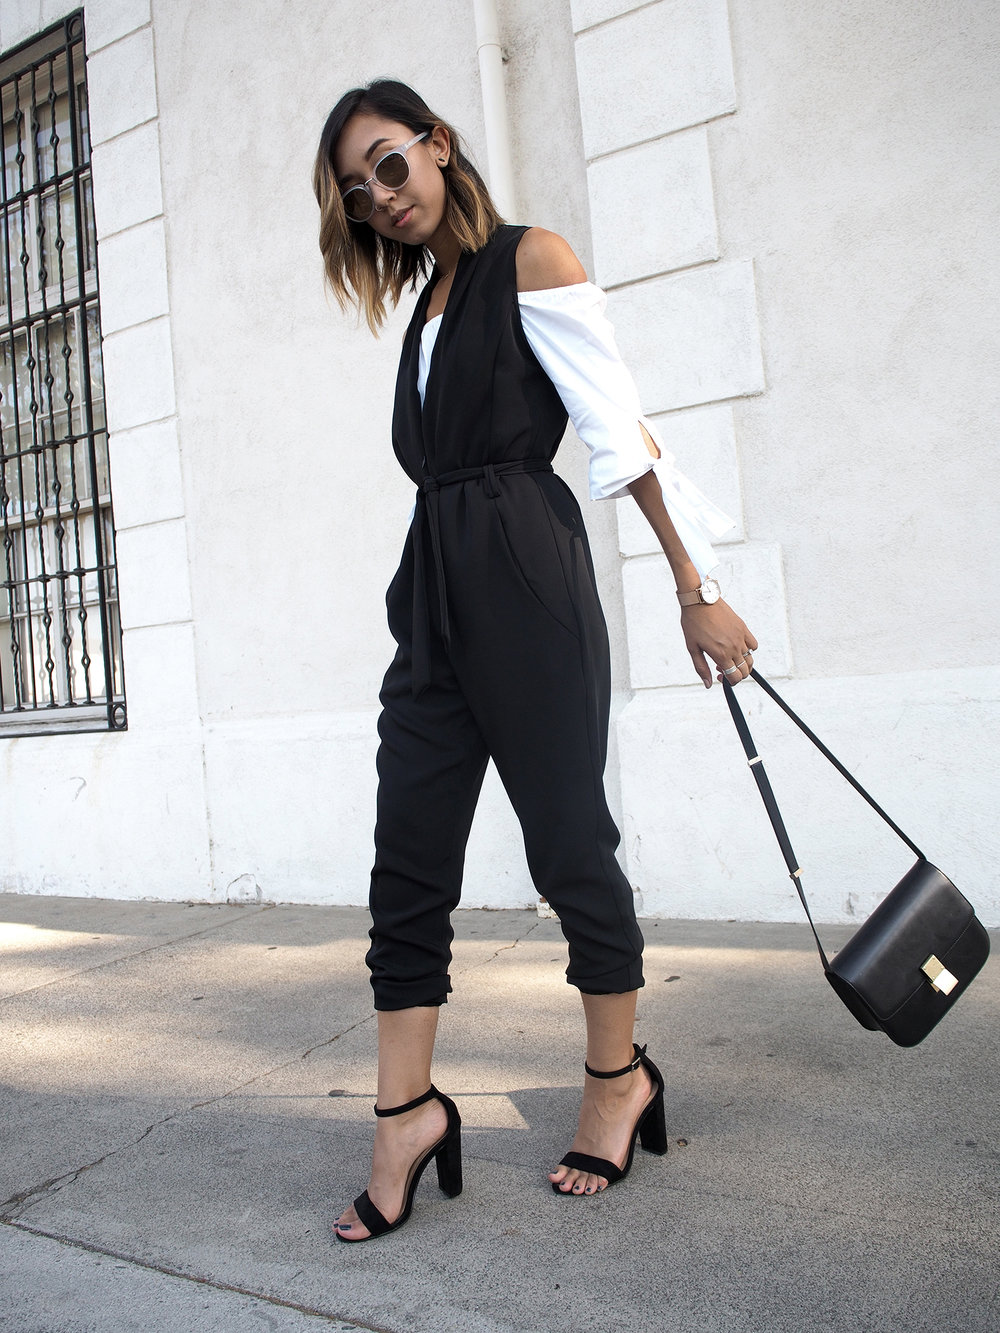 Stephanie Arant | Uniform Jumpsuit by art dept. clothing